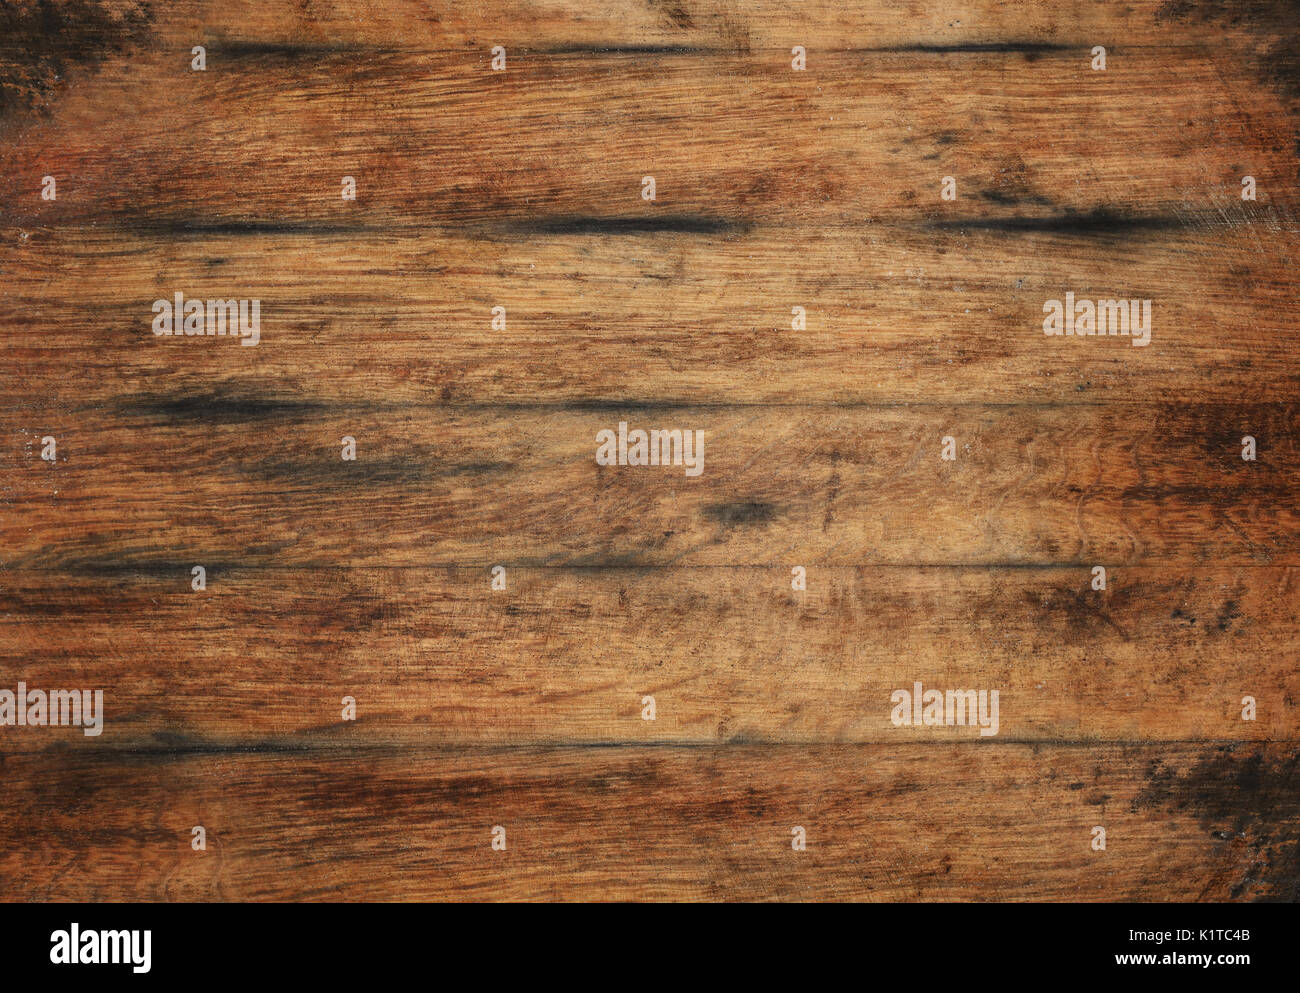 Vintage brown barrel wooden planks background texture with scratches and black stains over wood grain of old aged oak barrel bottom, close up - Stock Image